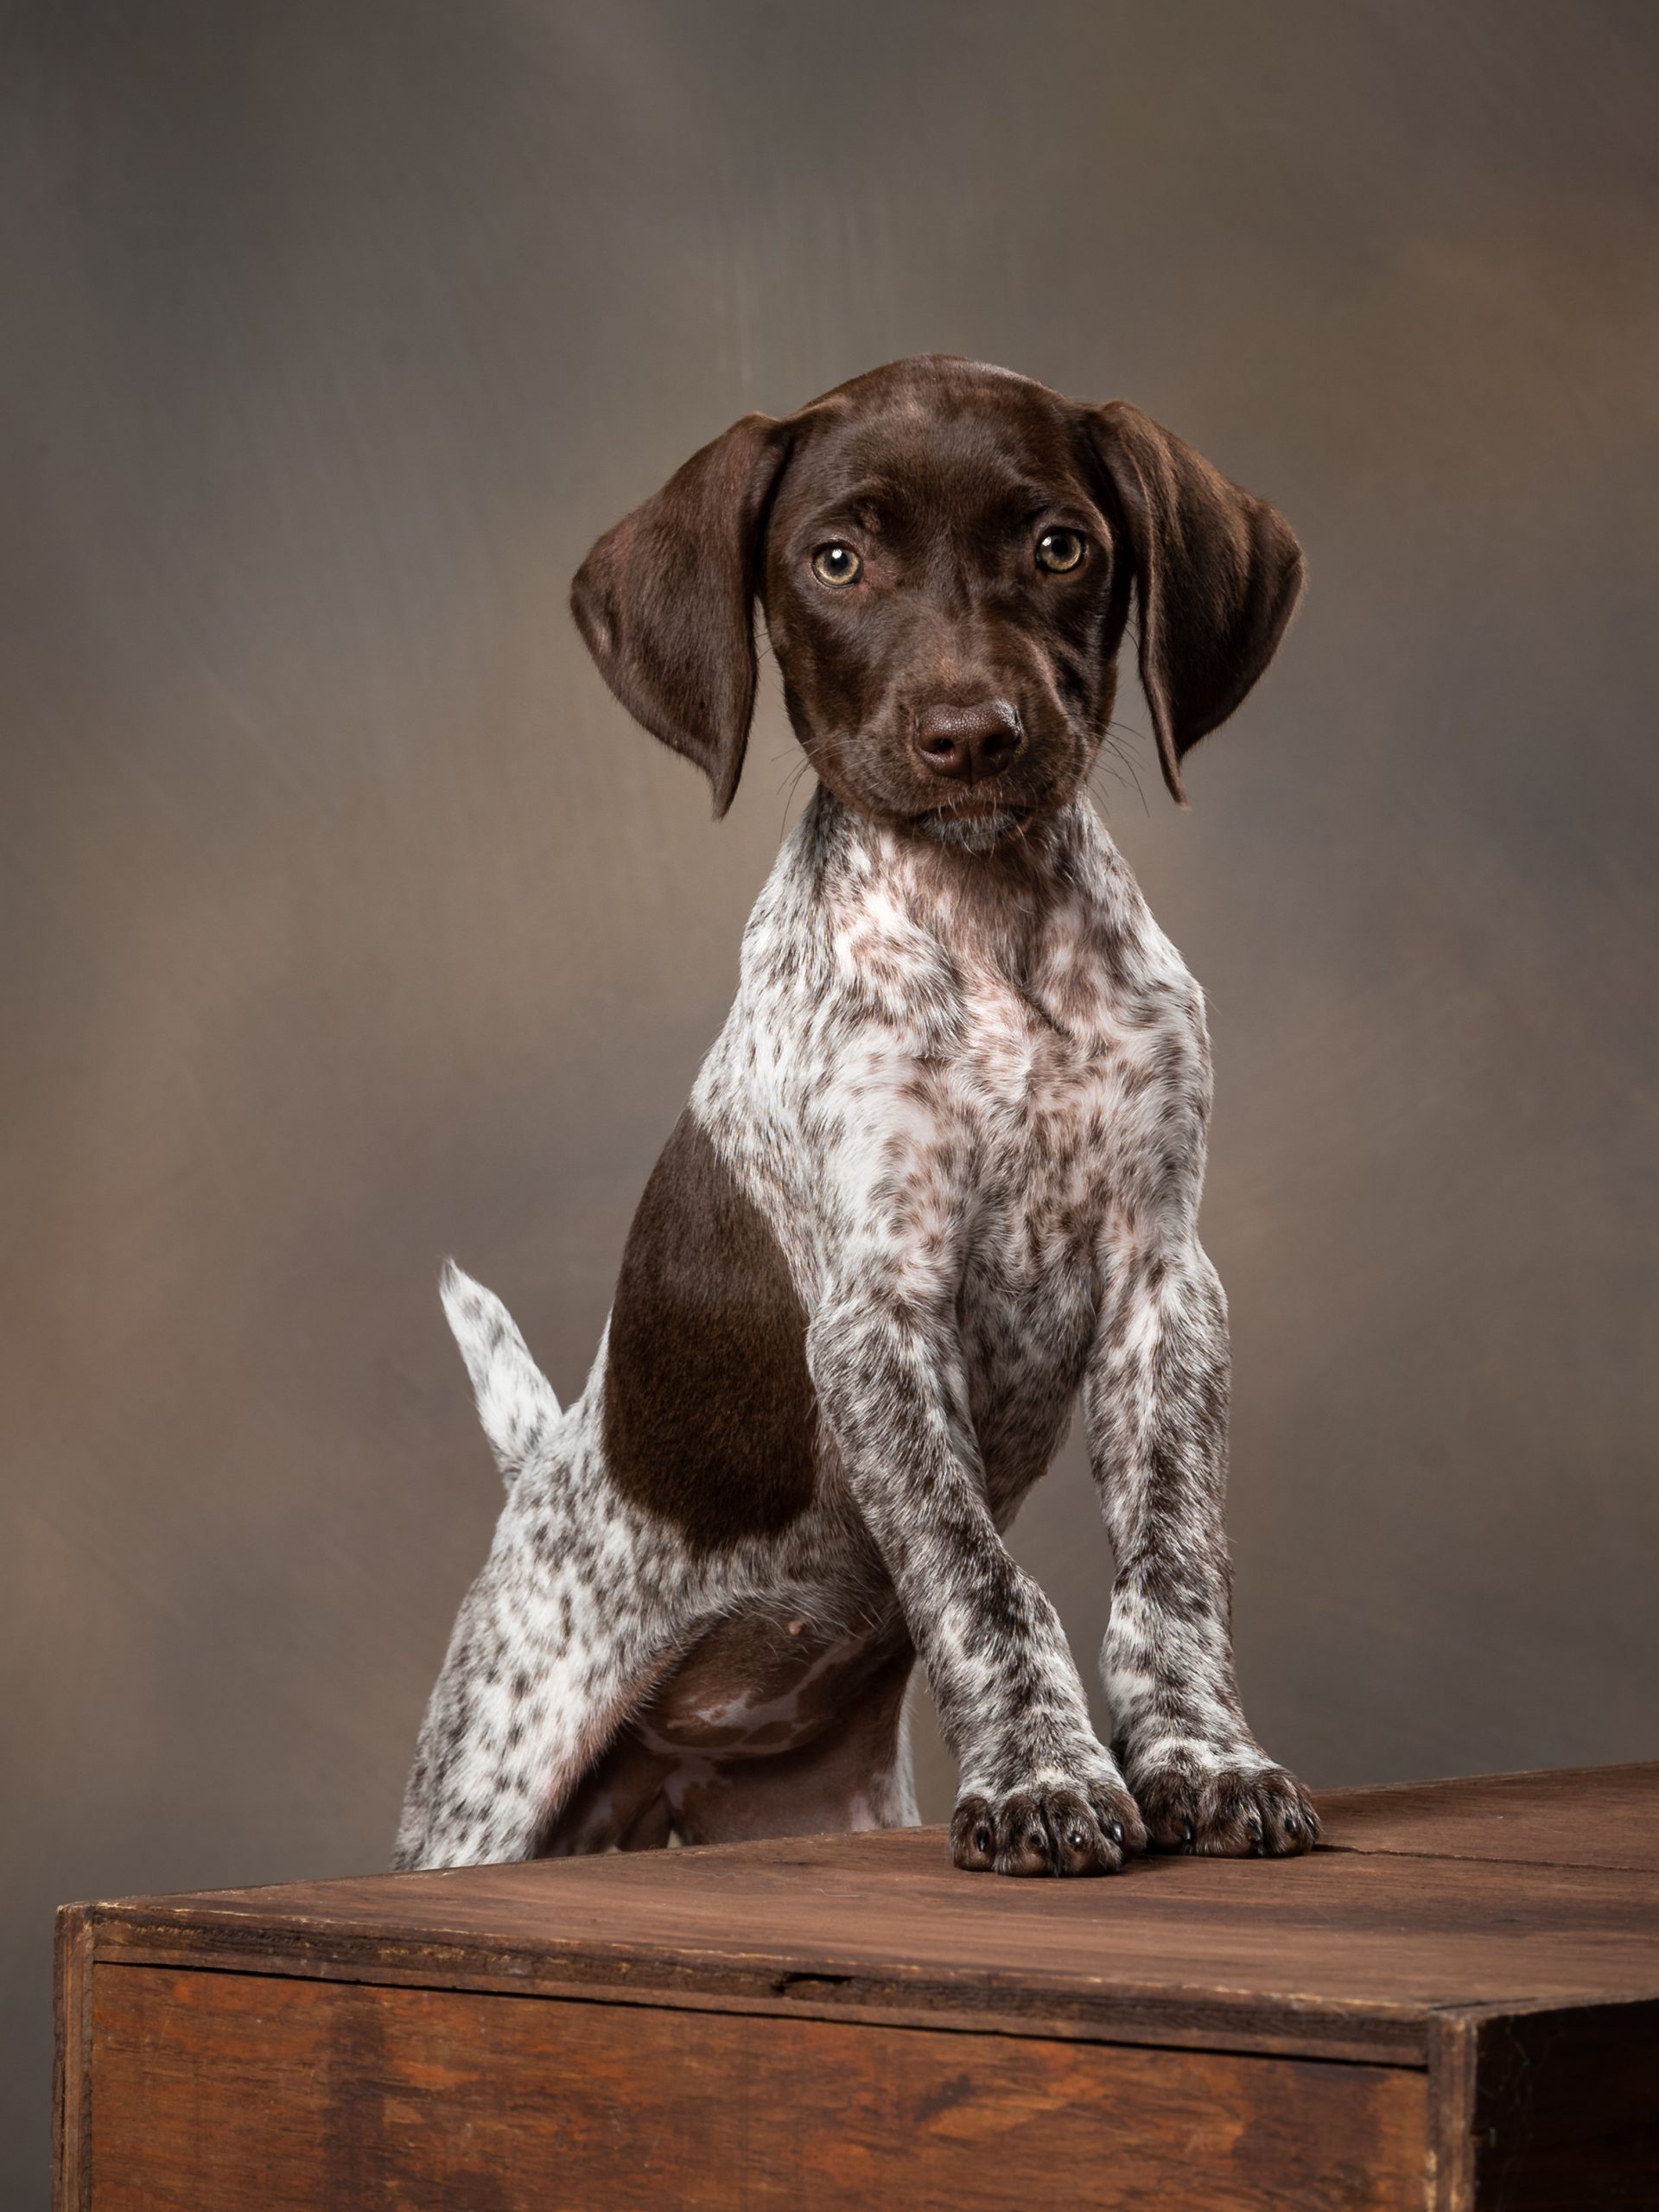 German Shorthaired Pointer puppy in studio